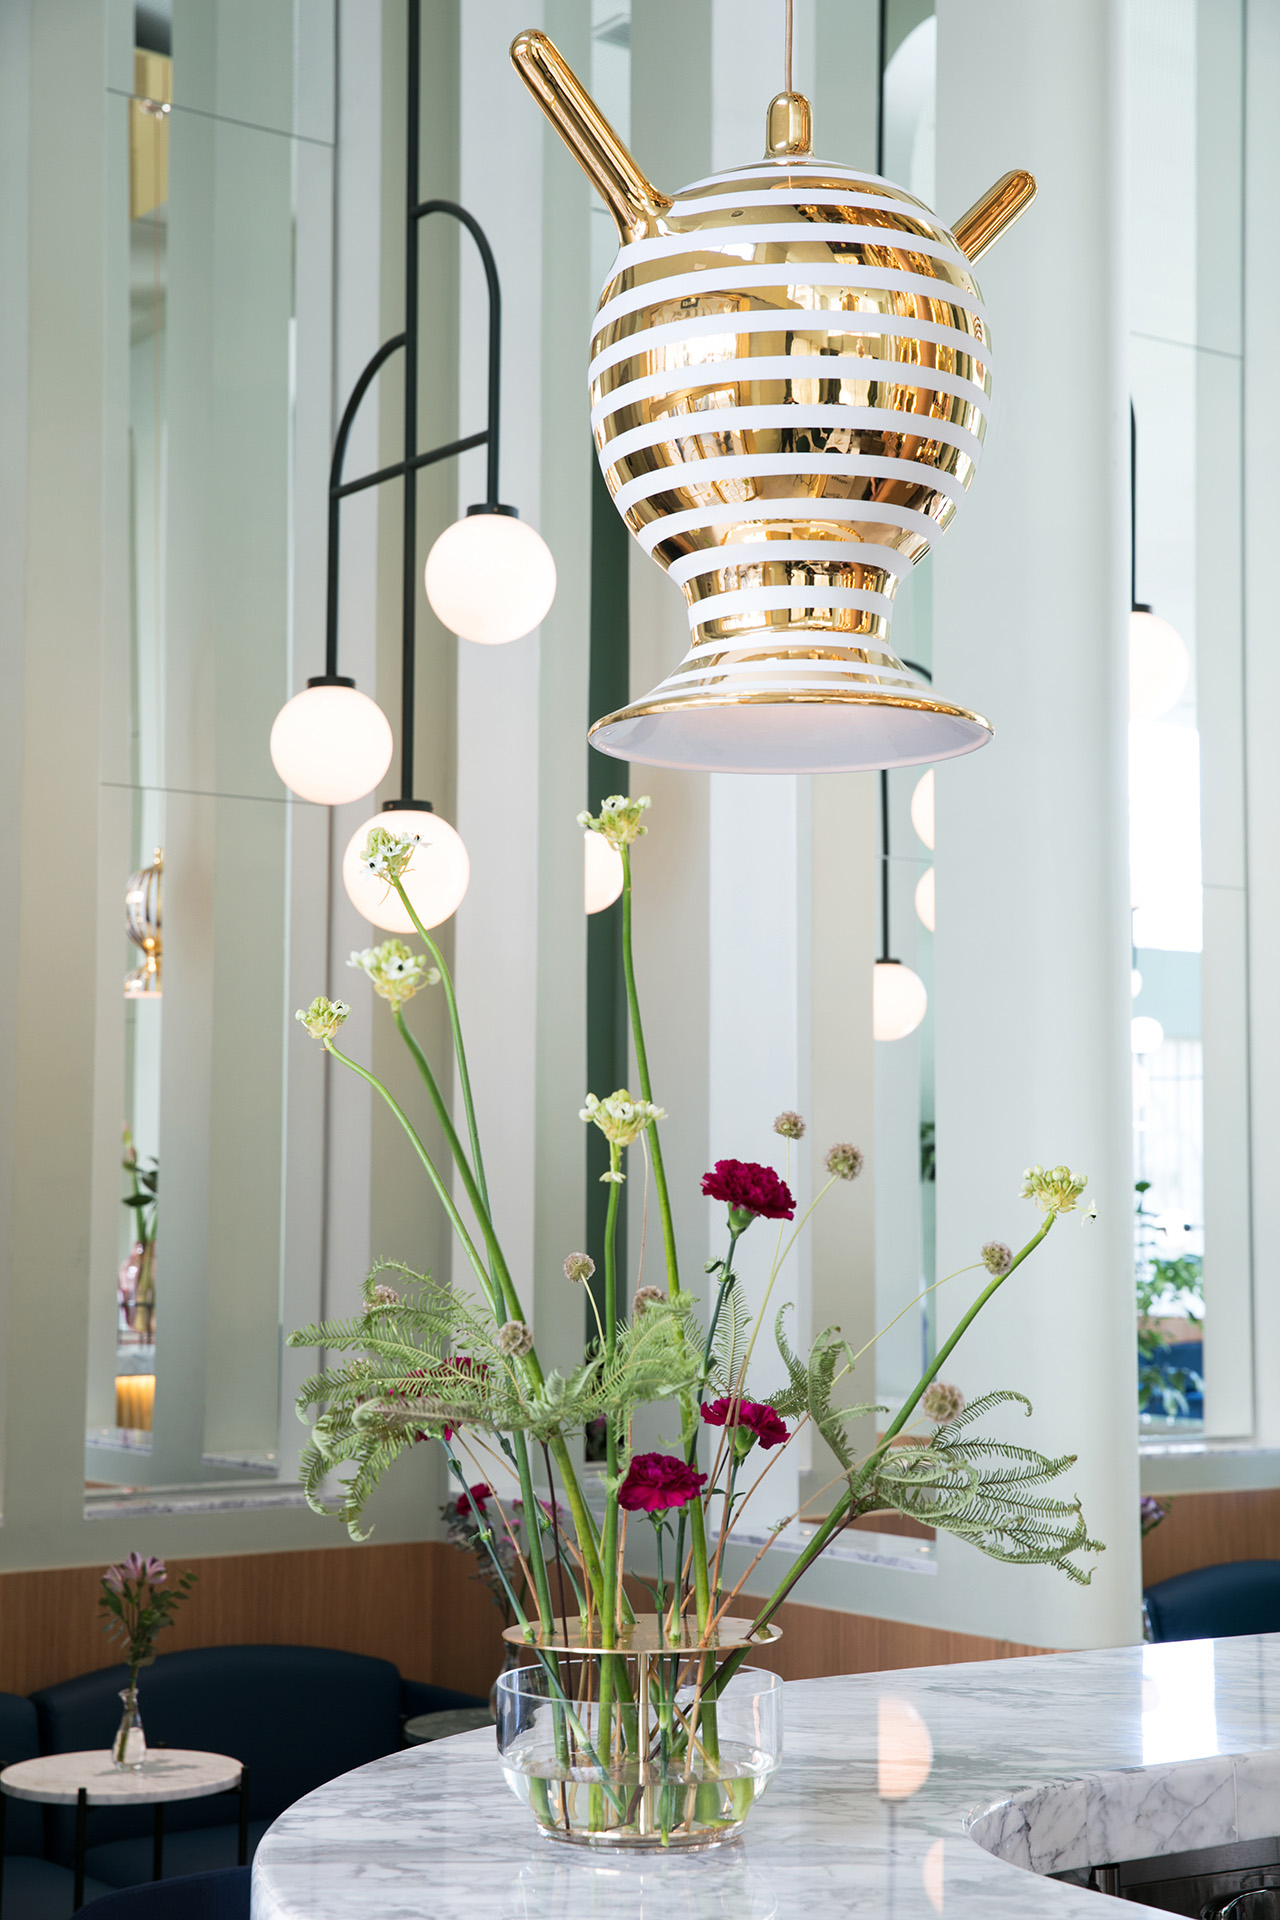 Garra Lobby Bar: Custom made ceramic lamps and structural lamps designed by Jaime Hayon specially for Hotel Barceló Torre de Madrid. Ikebana vase by Fritz Hansen.